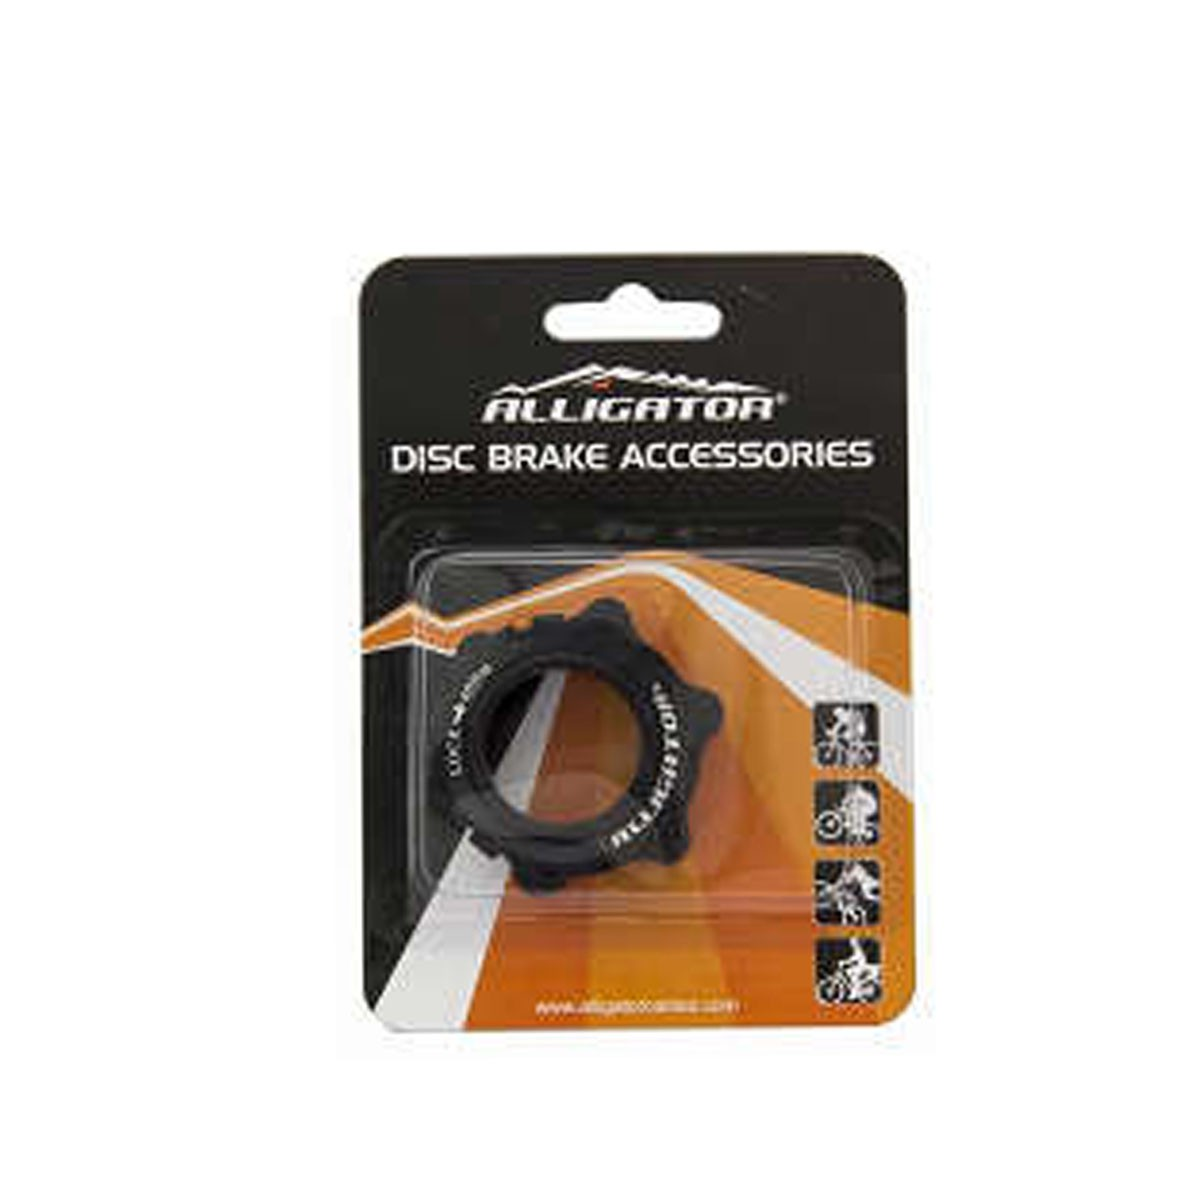 ADAPTADOR ALLIGATOR PARA CENTER LOCK 15 E 20 MM PRETO